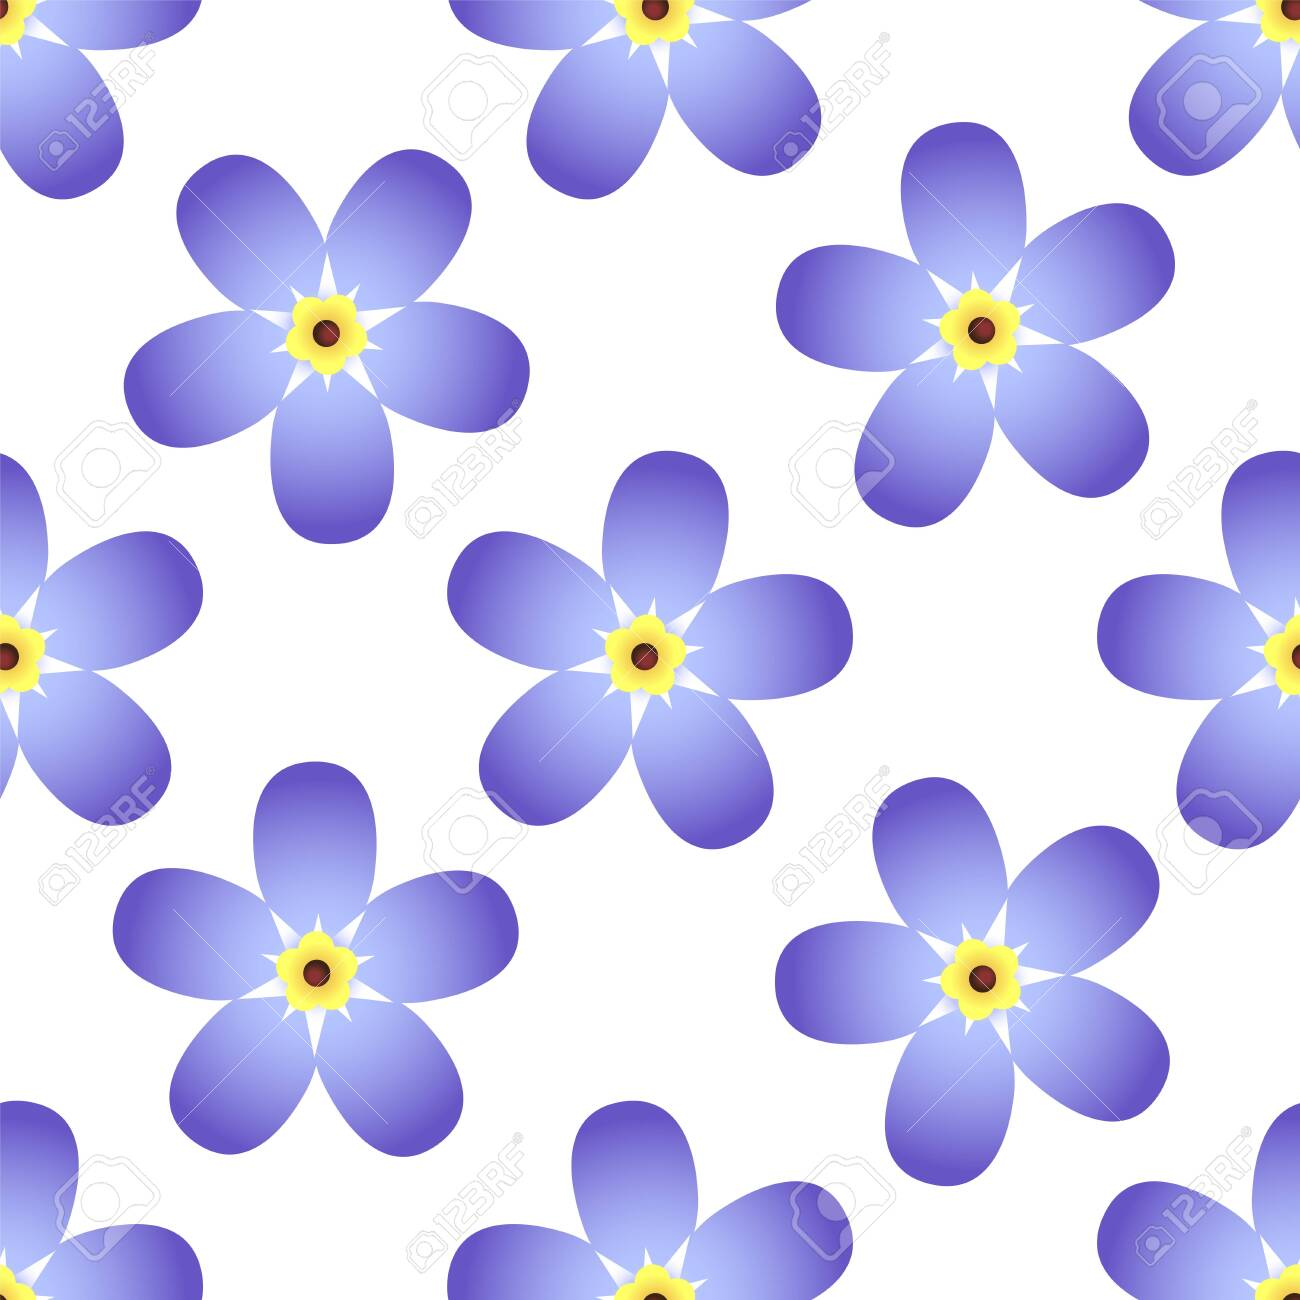 Forget-me-not vector flower isolated on white background. Seamless vector pattern - 144797520